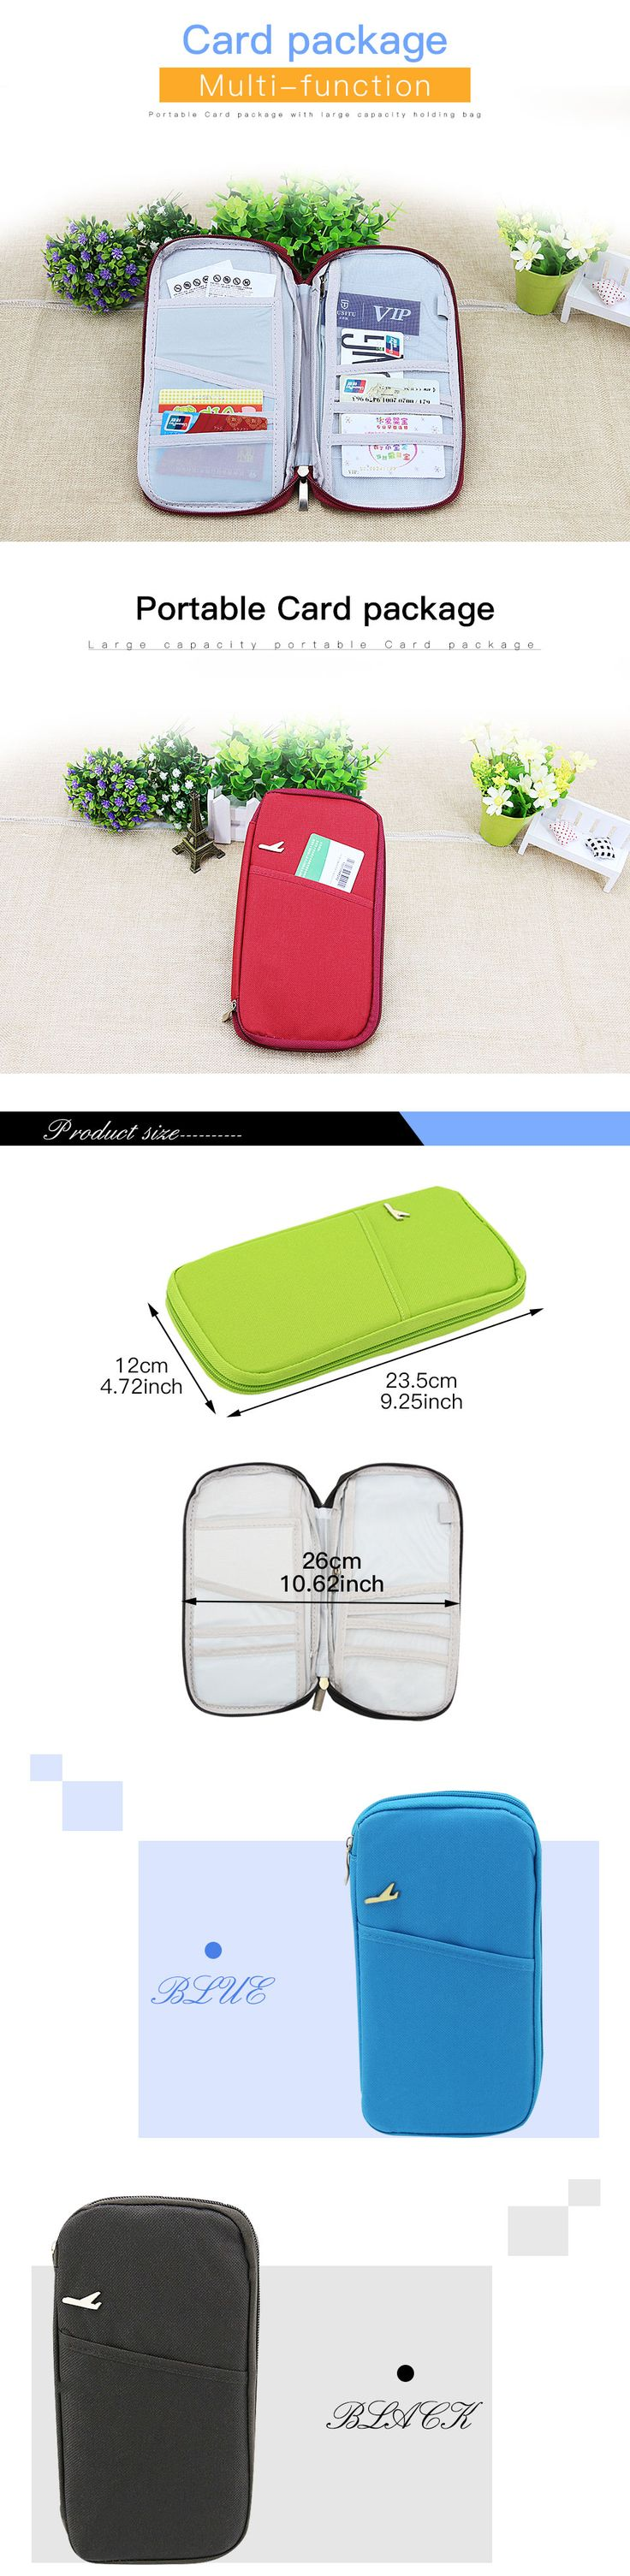 Yesello Travel Passport Cover ID Credit Card Purse Storage Money Holder Case Bag Wallet For Women , https://myalphastore.com/products/yesello-travel-passport-cover-id-credit-card-purse-storage-money-holder-case-bag-wallet-for-women/,